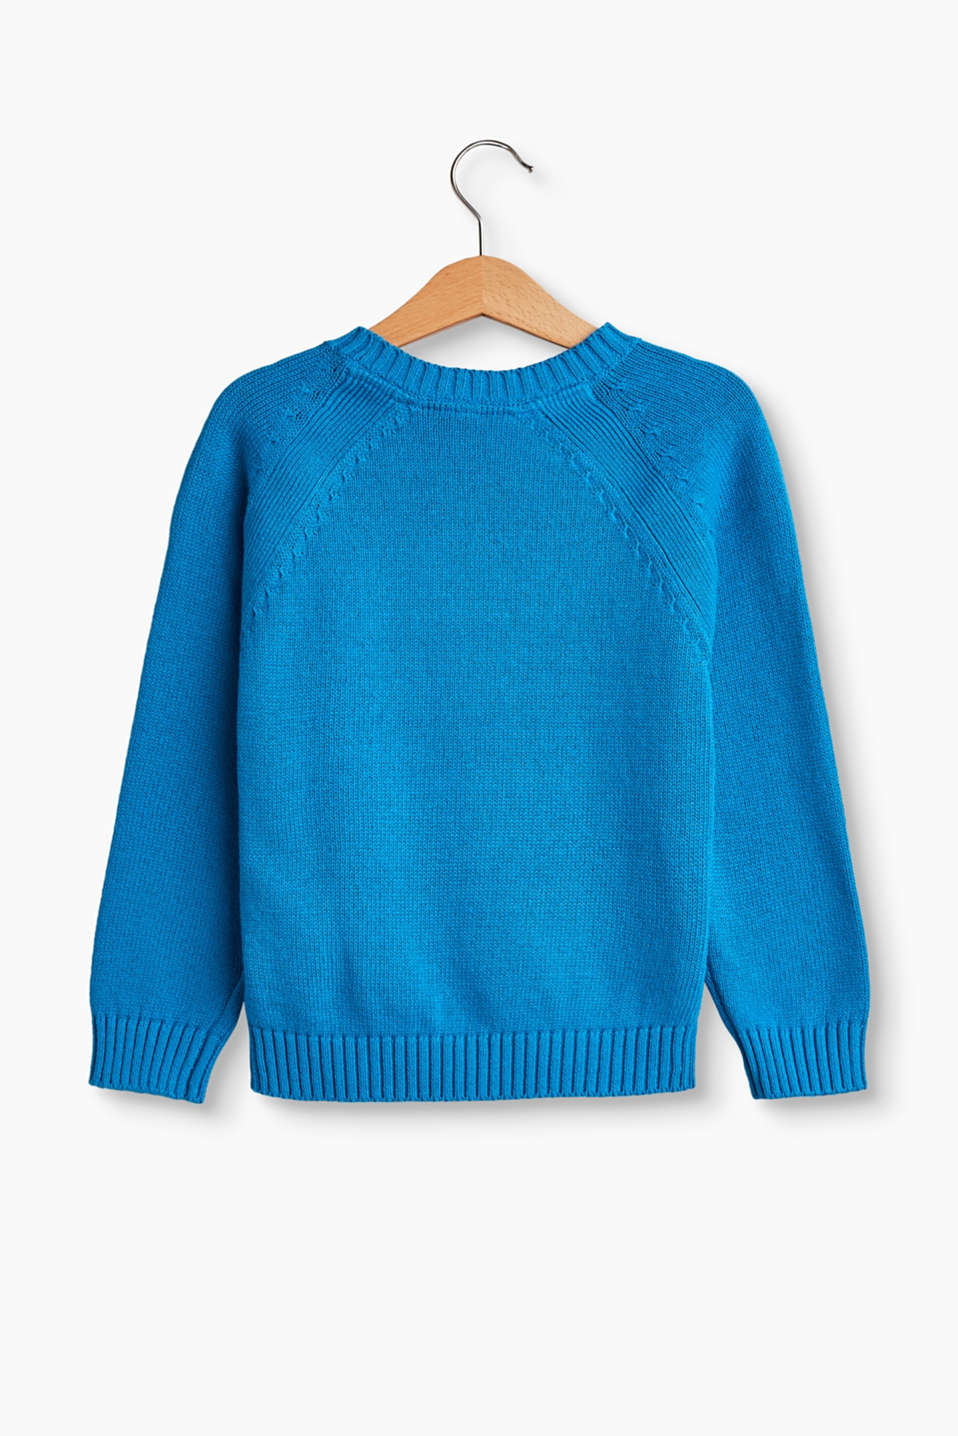 Knit statement jumper